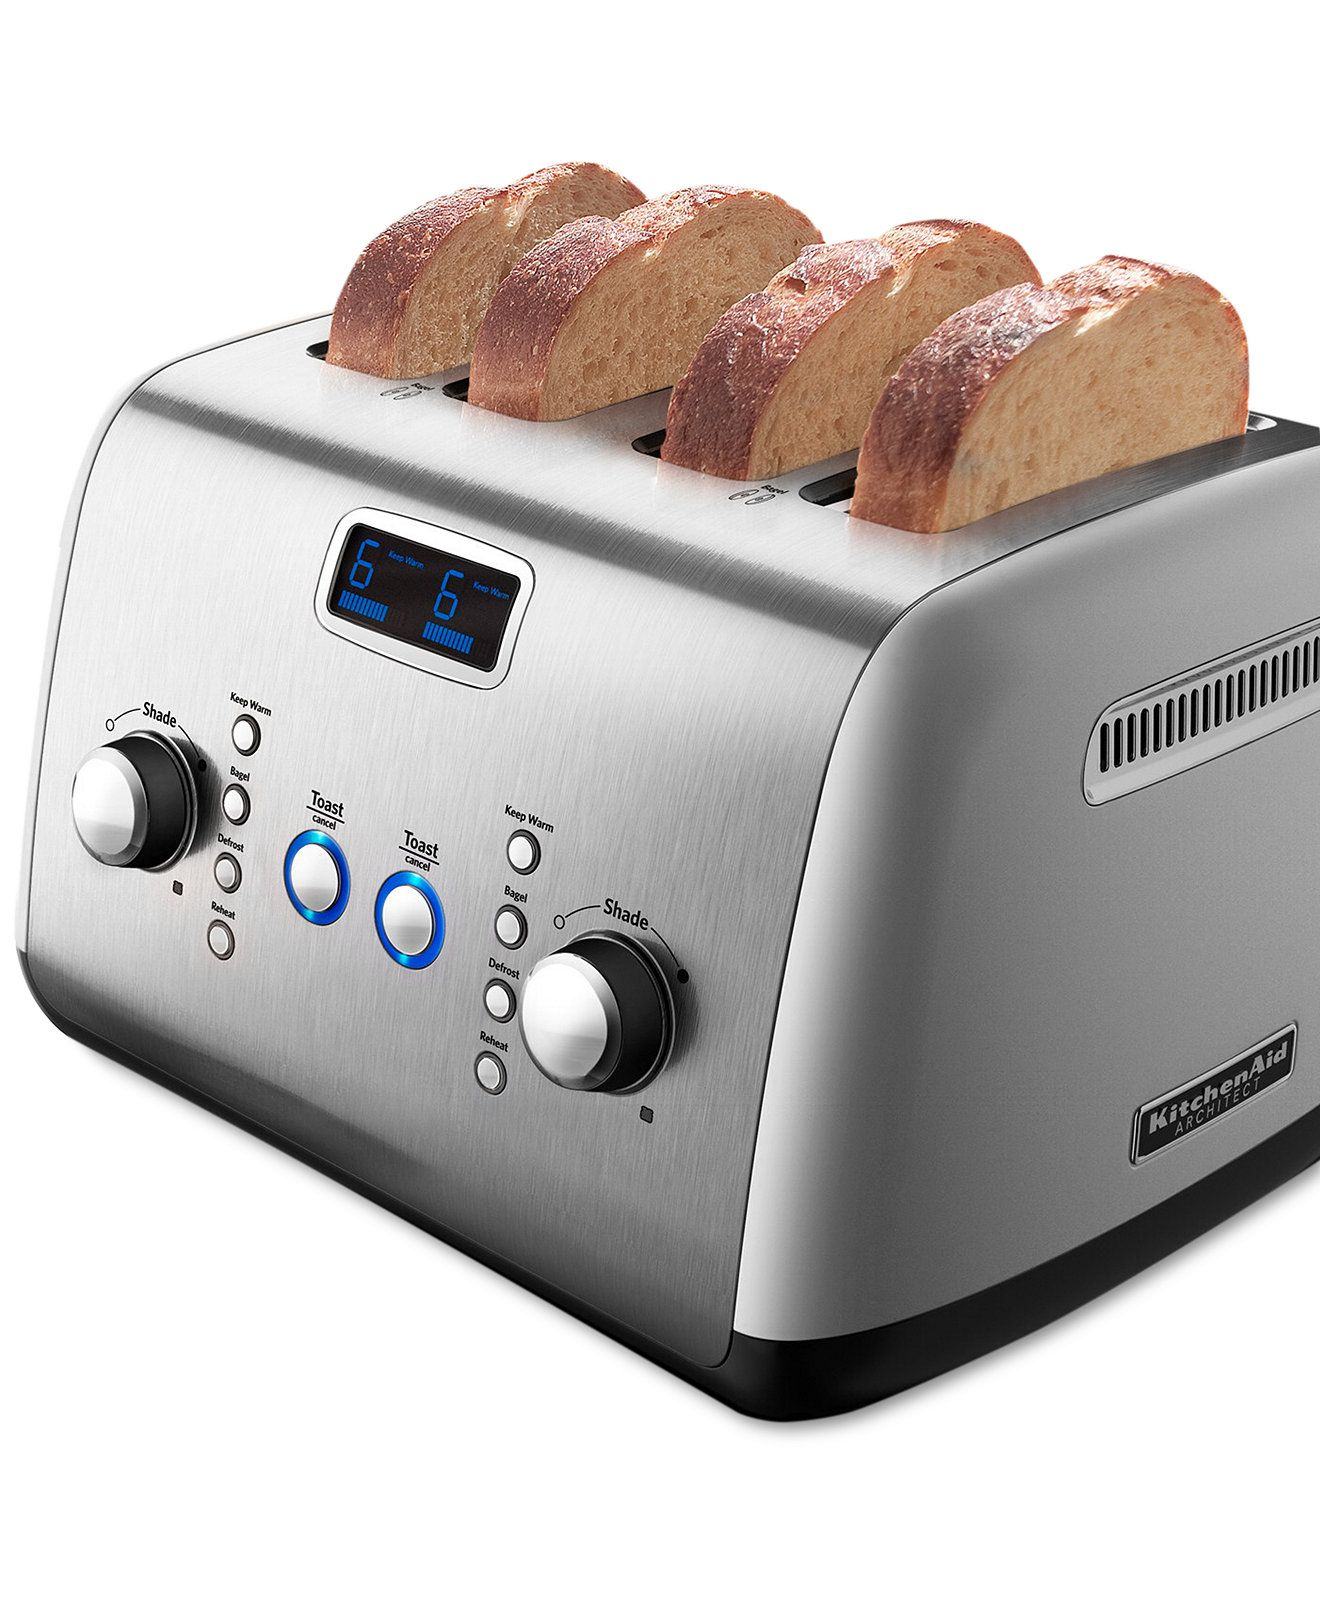 KitchenAid KMT423CS Architect Digital 4 Slice Toaster   Toasters U0026 Toaster  Ovens   Kitchen   Macyu0027s